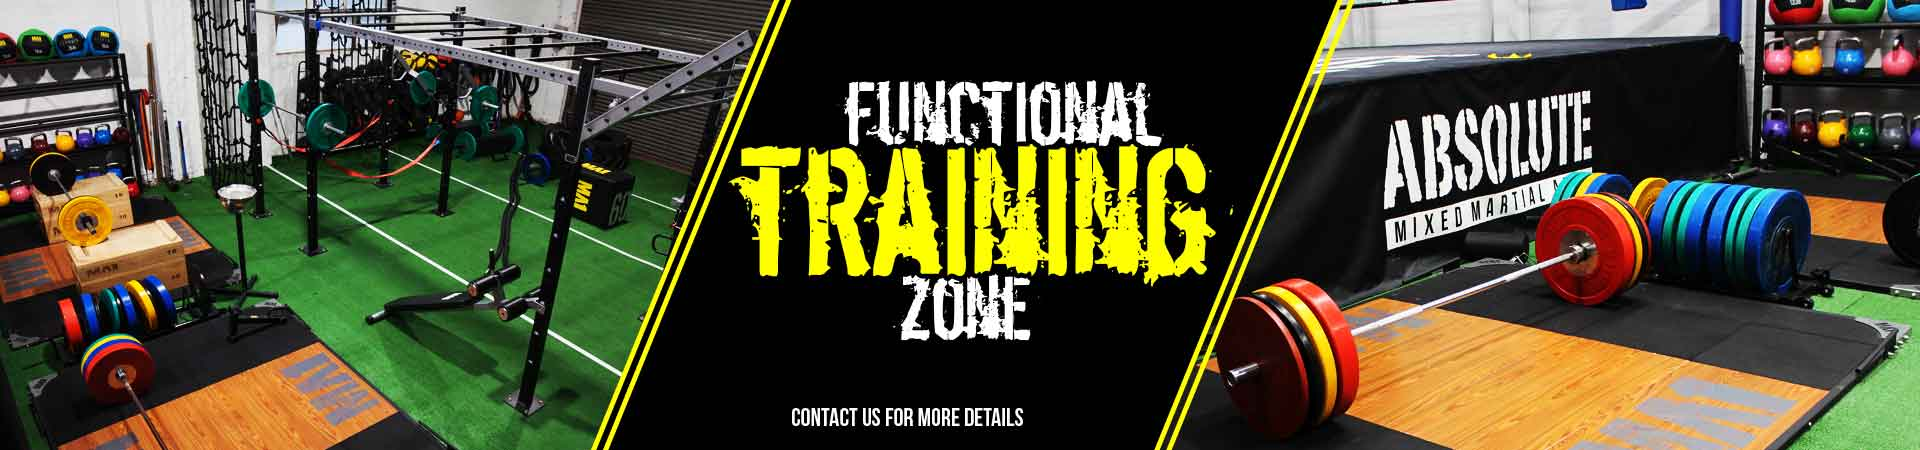 MA1 Functional Training Zone